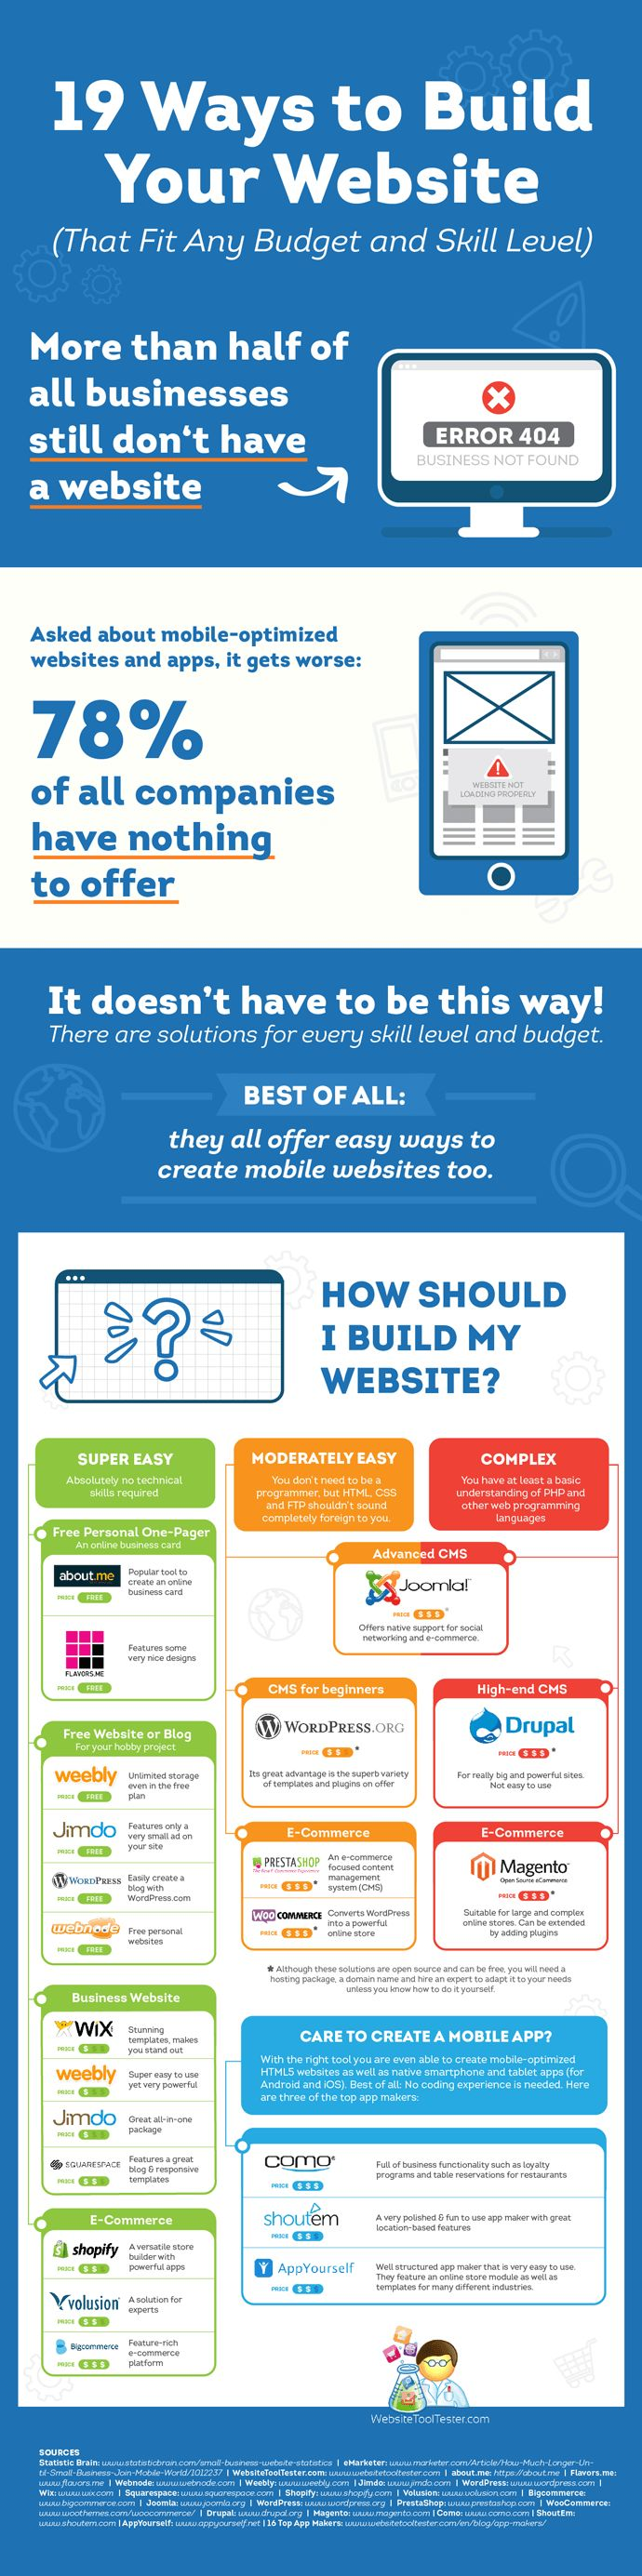 19 Ways to Build Your Website, Online Store and Mobile App [Infographic] | Social Media Today